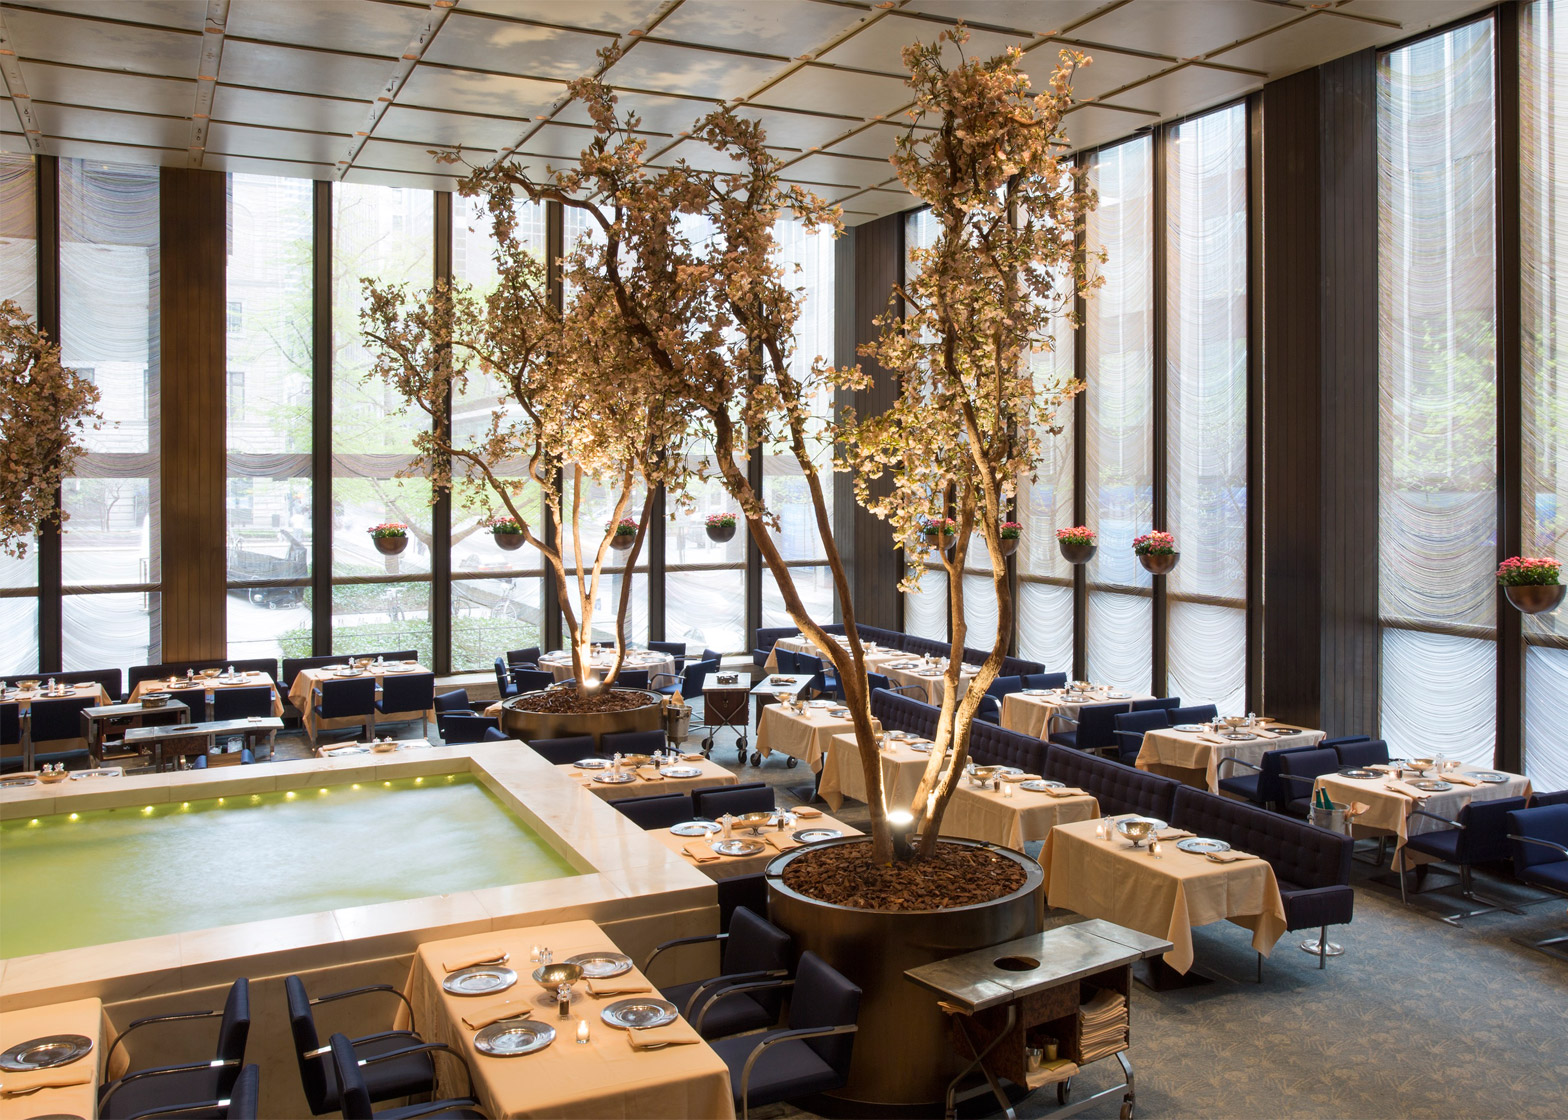 Critics Slam Philip Johnson Four Seasons Restaurant Auction - Interieur New York Style